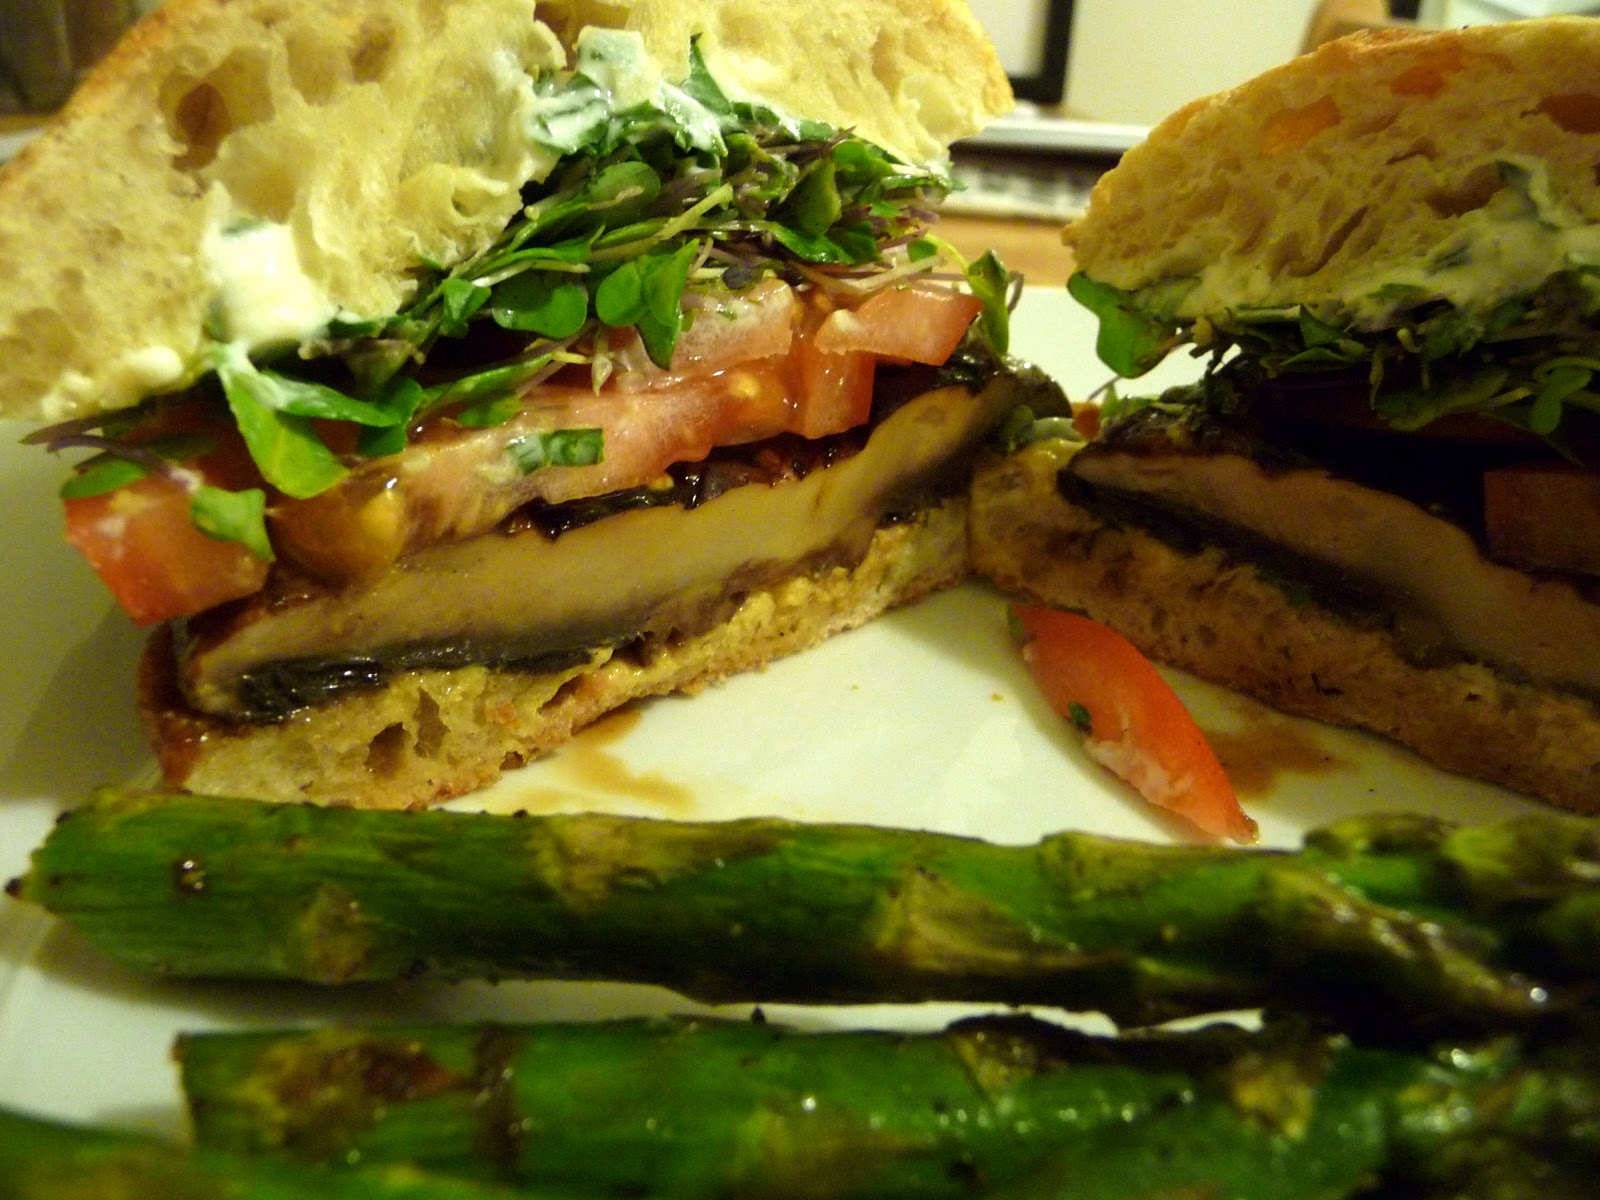 Simply Scrumptious: Portobello and Goat Cheese Burger